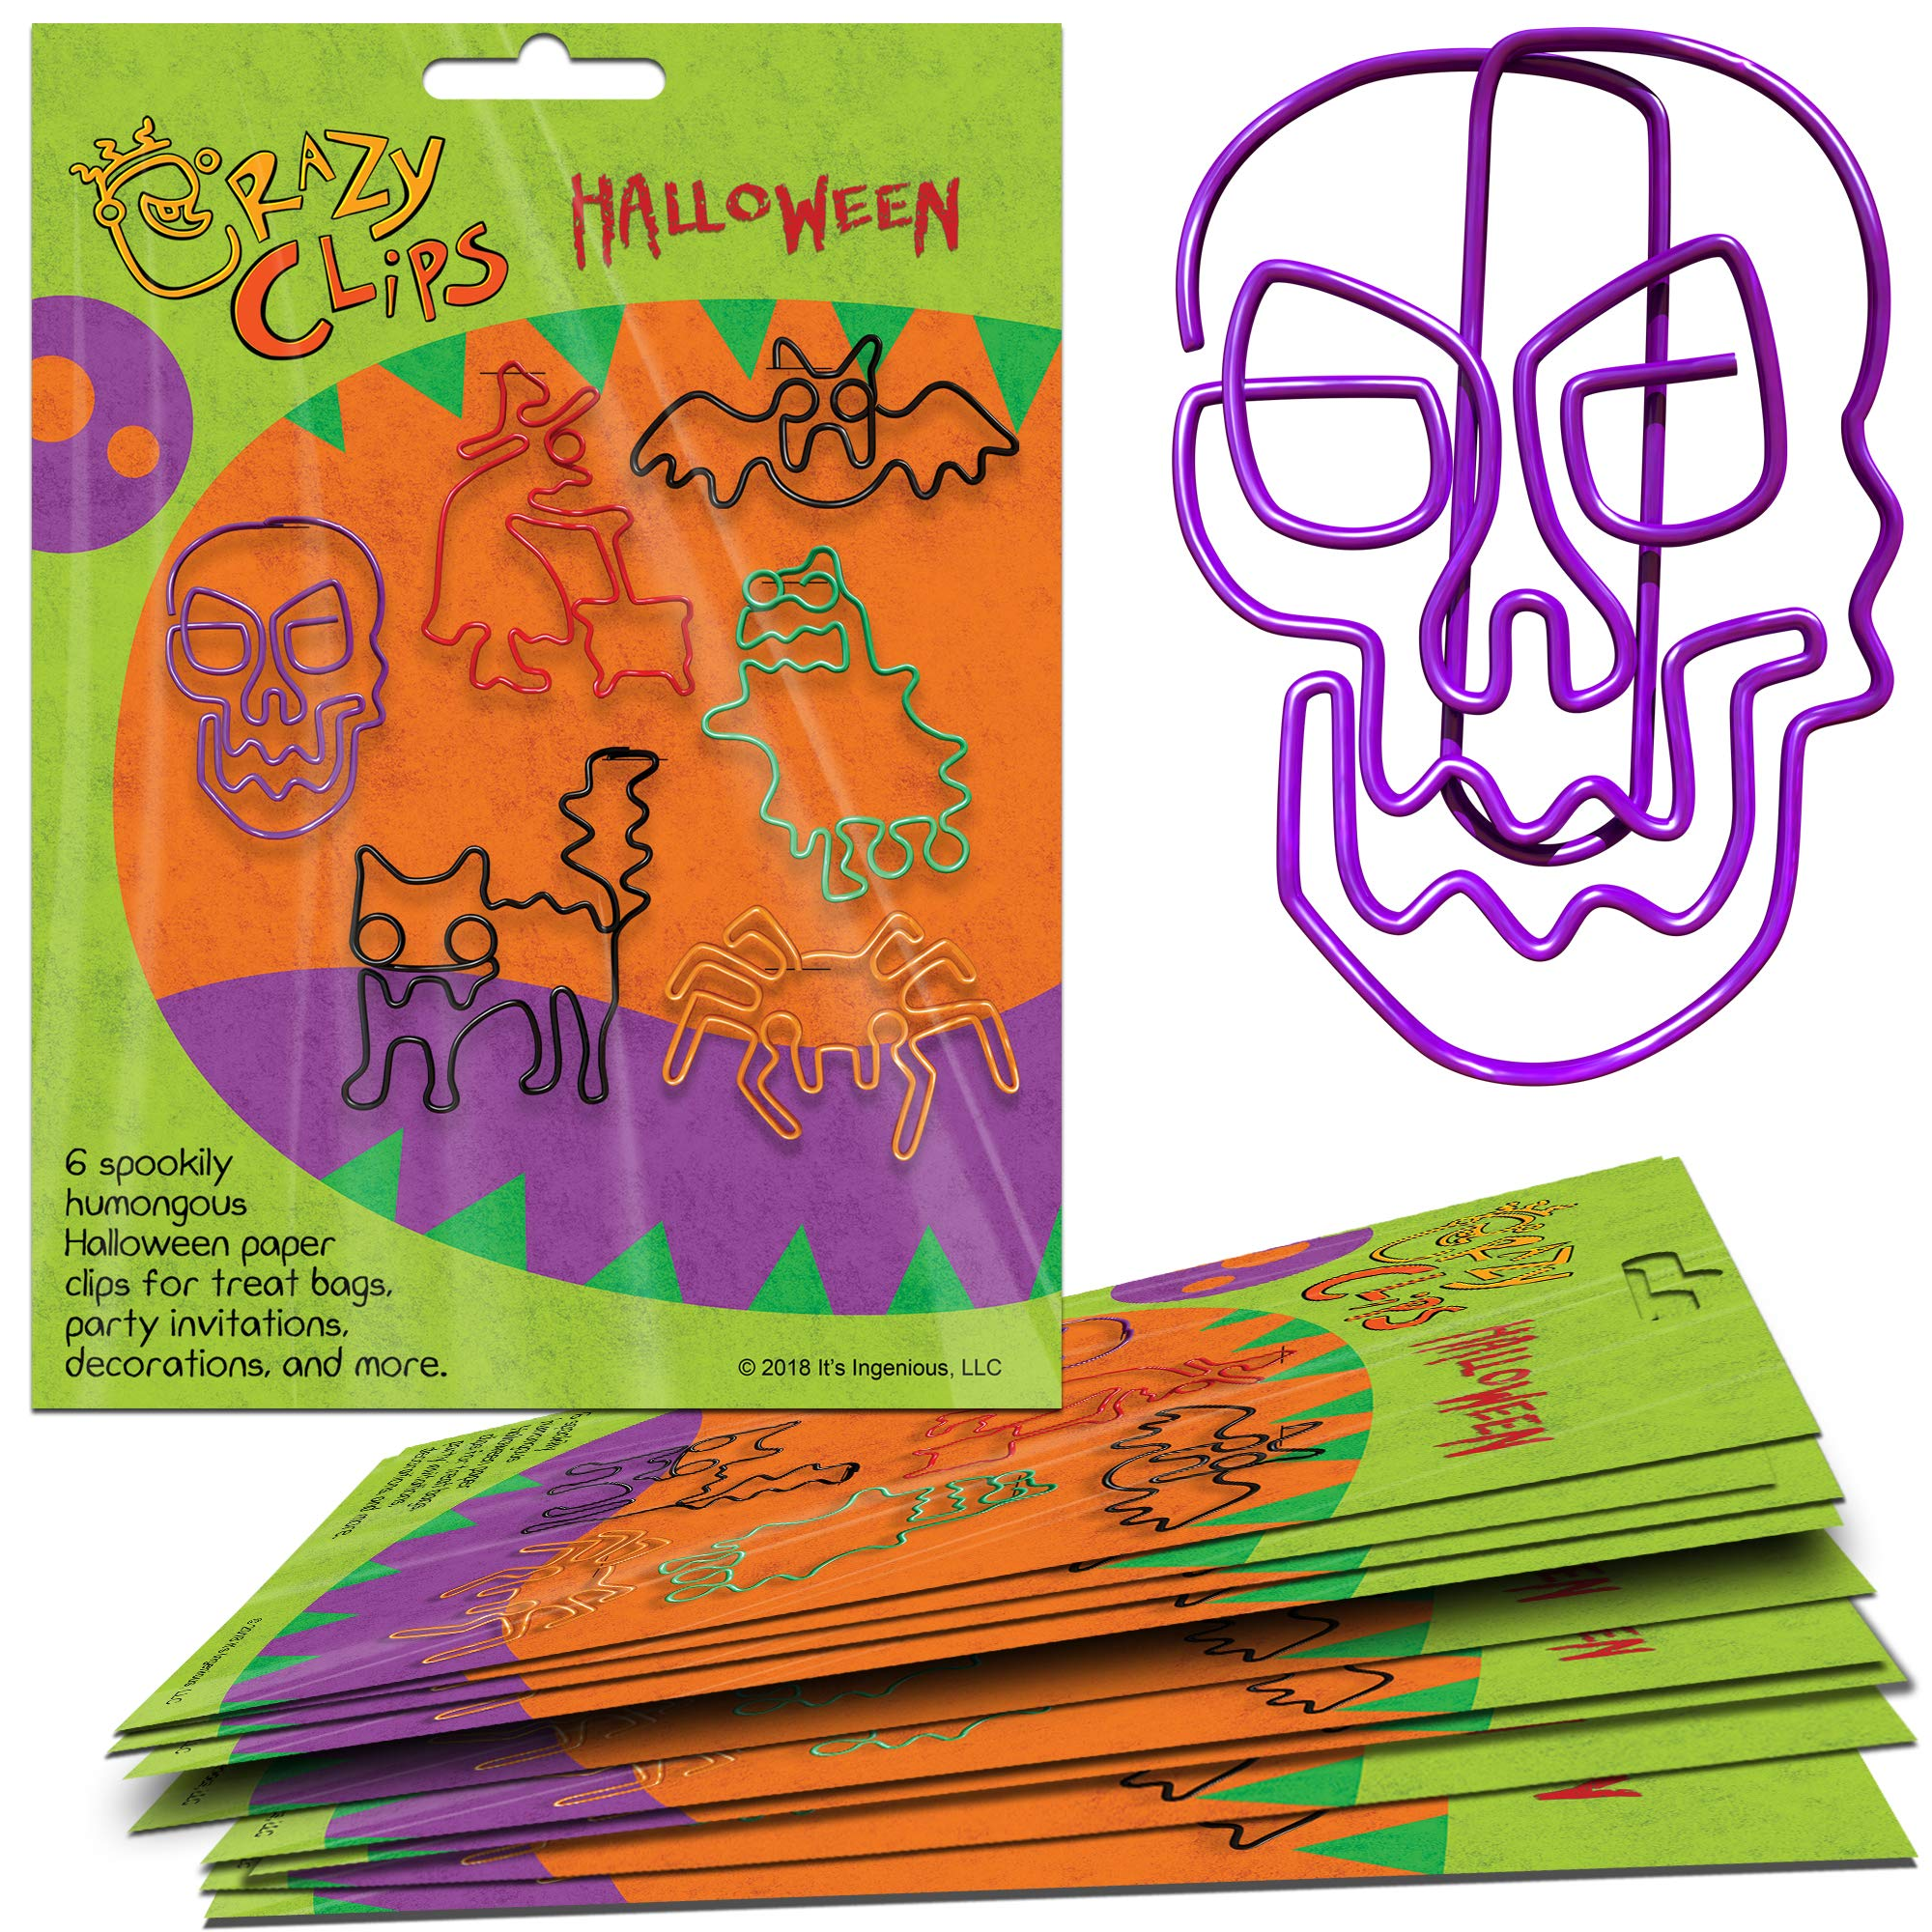 Halloween Gift Packs - 6 Big, Super-Cute Clippable Creatures for Party Favors, Prizes, Treats, and Fun Halloween Gifts. Package of 10